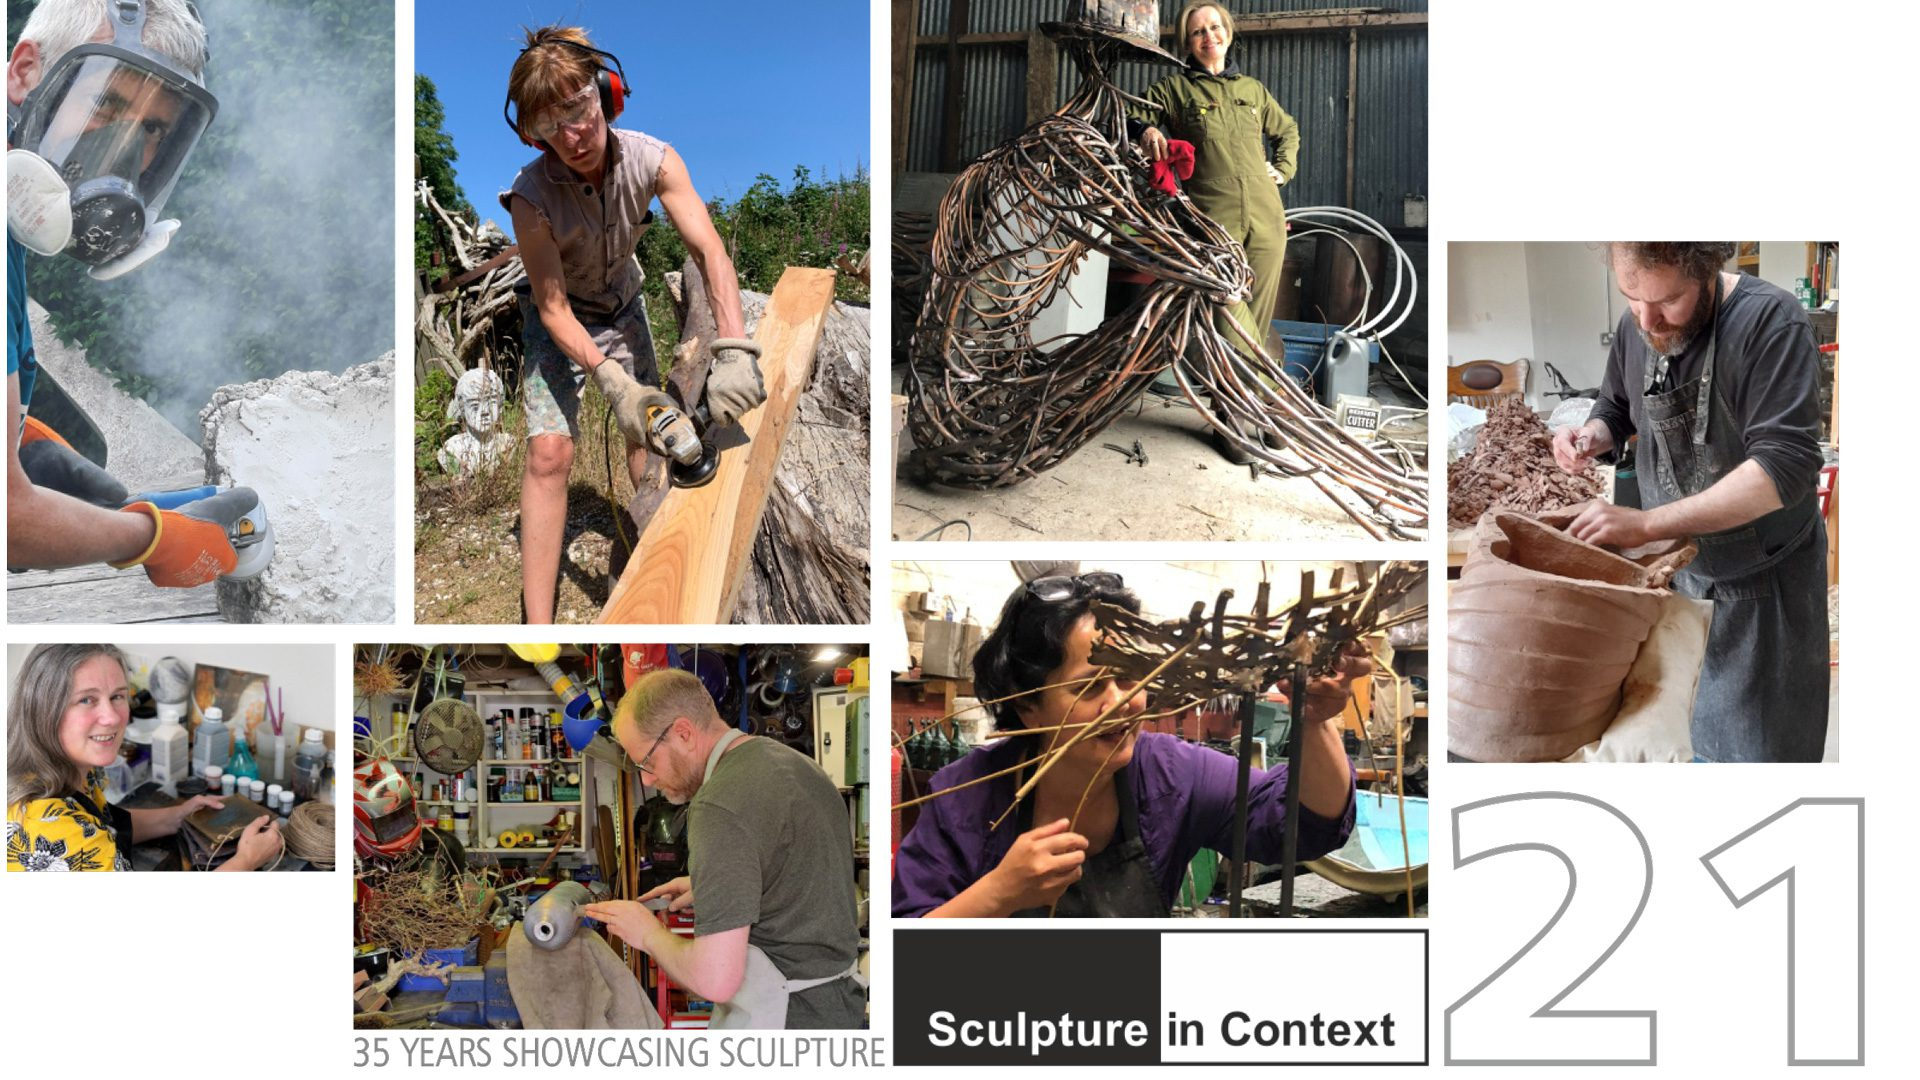 Sculpture in Context 2021 cover photo featuring Michael C Keane Irish Sculptor at work